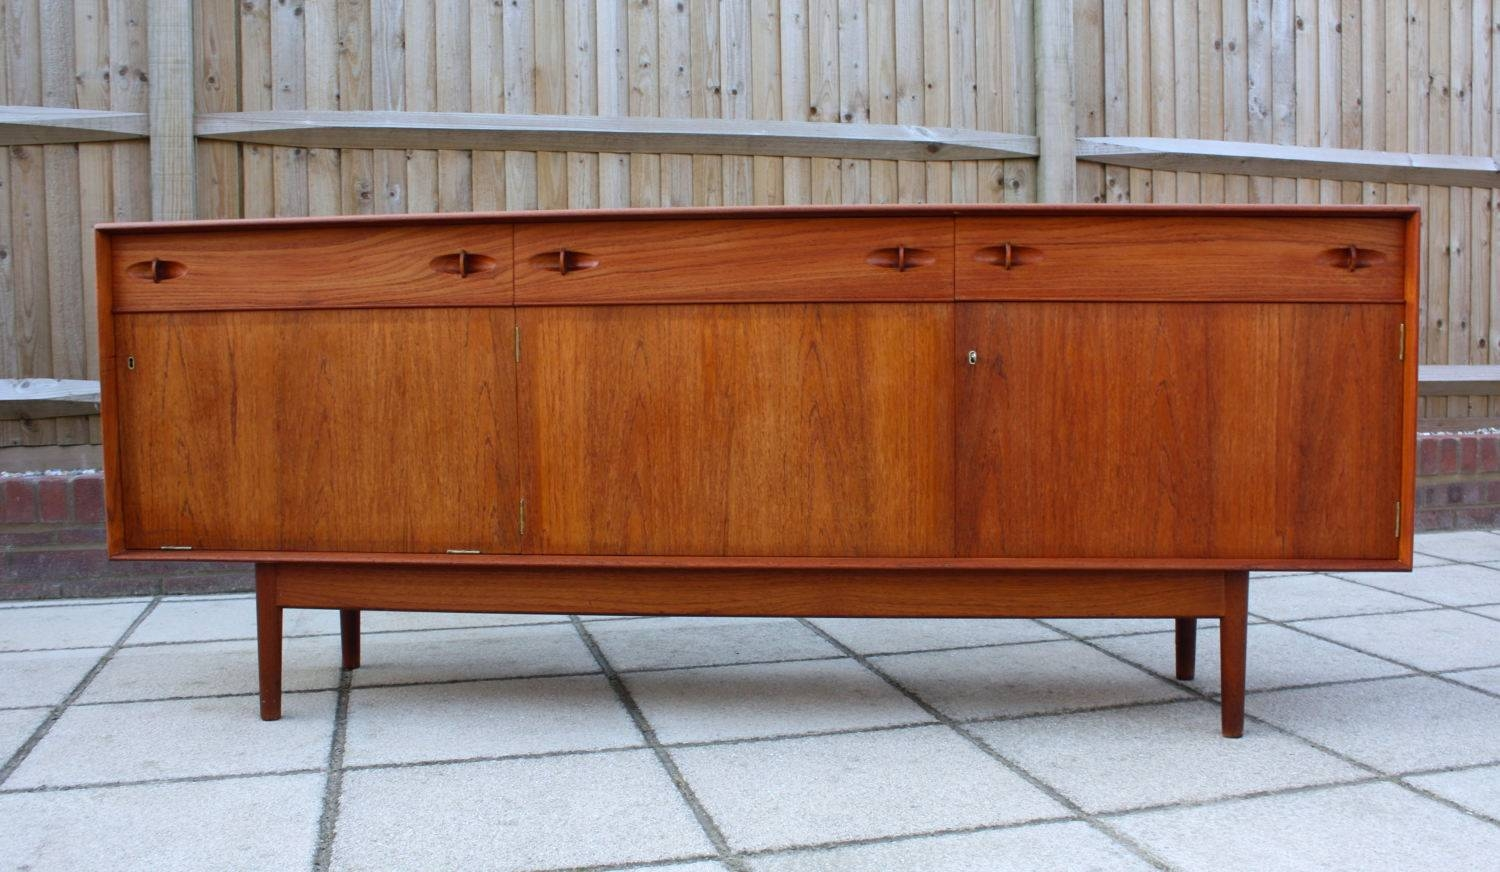 Dalescraft Mid Century Teak Sideboard Retro Vintage Danish G Plan within 50S Sideboards (Image 6 of 15)